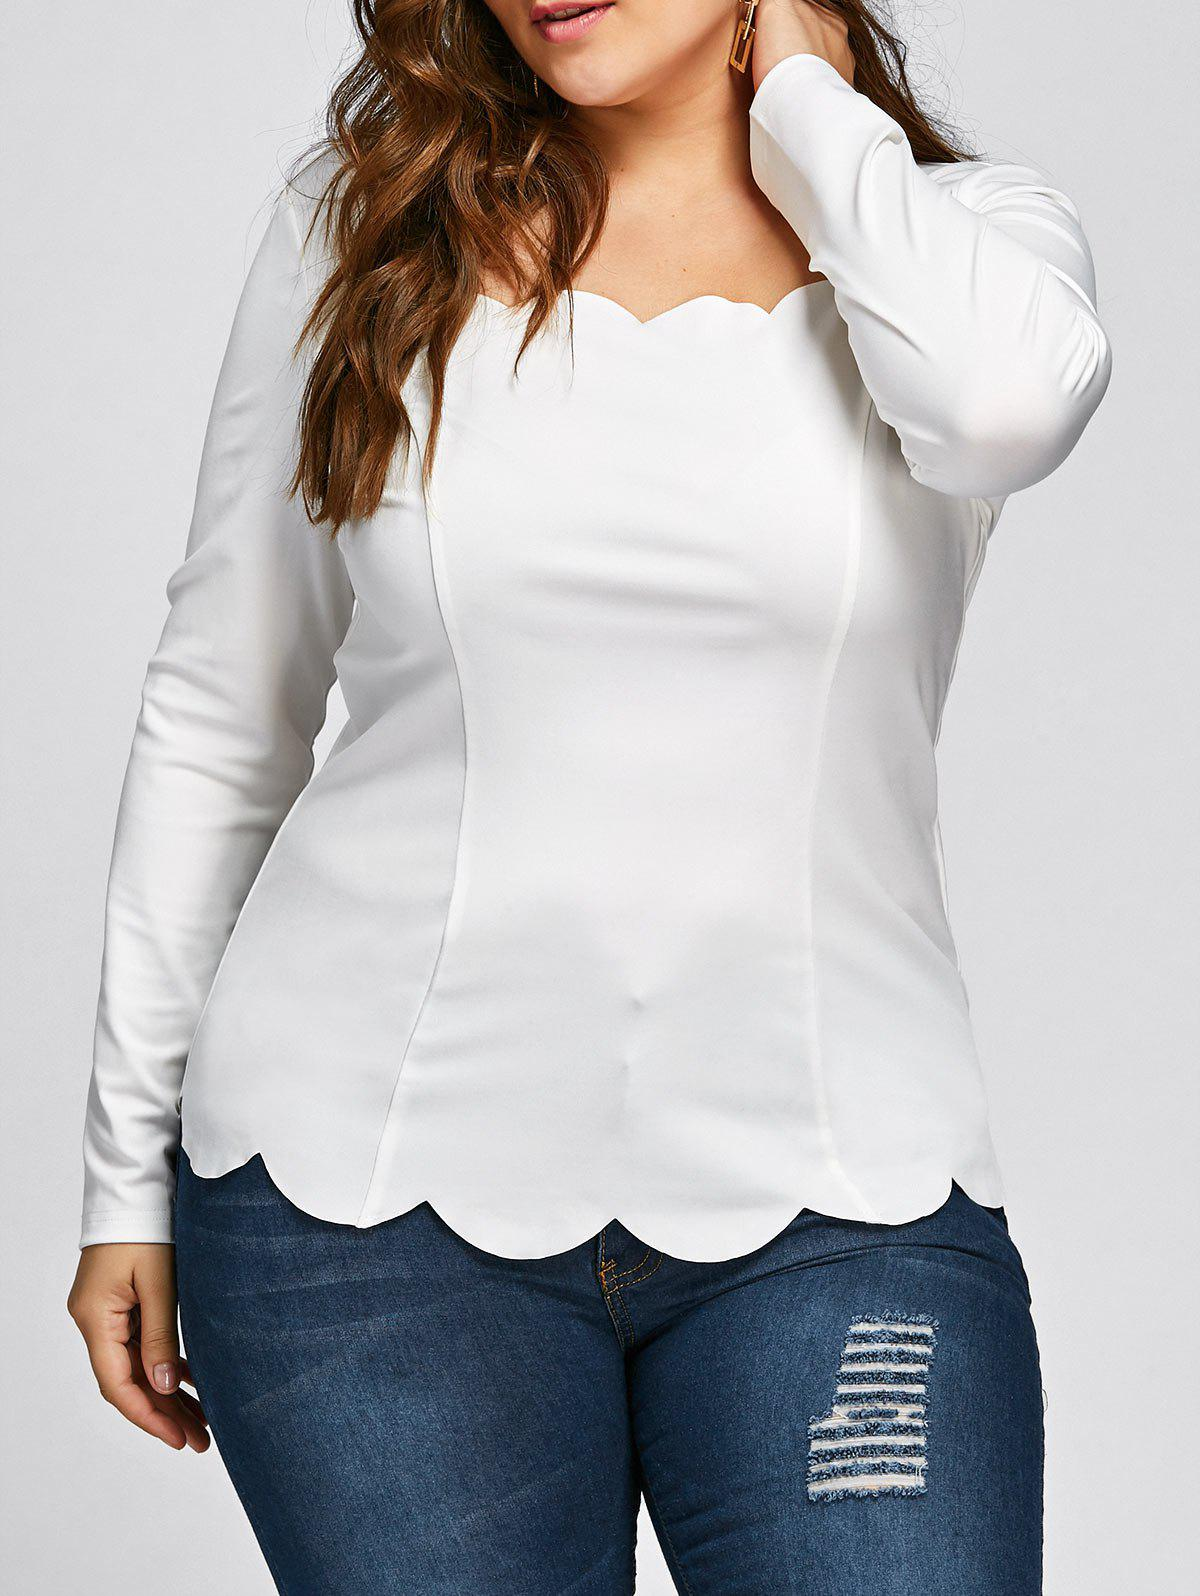 3f12d40978a3a7 47% OFF] Plus Size Square Neck Scalloped Long Sleeve Top | Rosegal